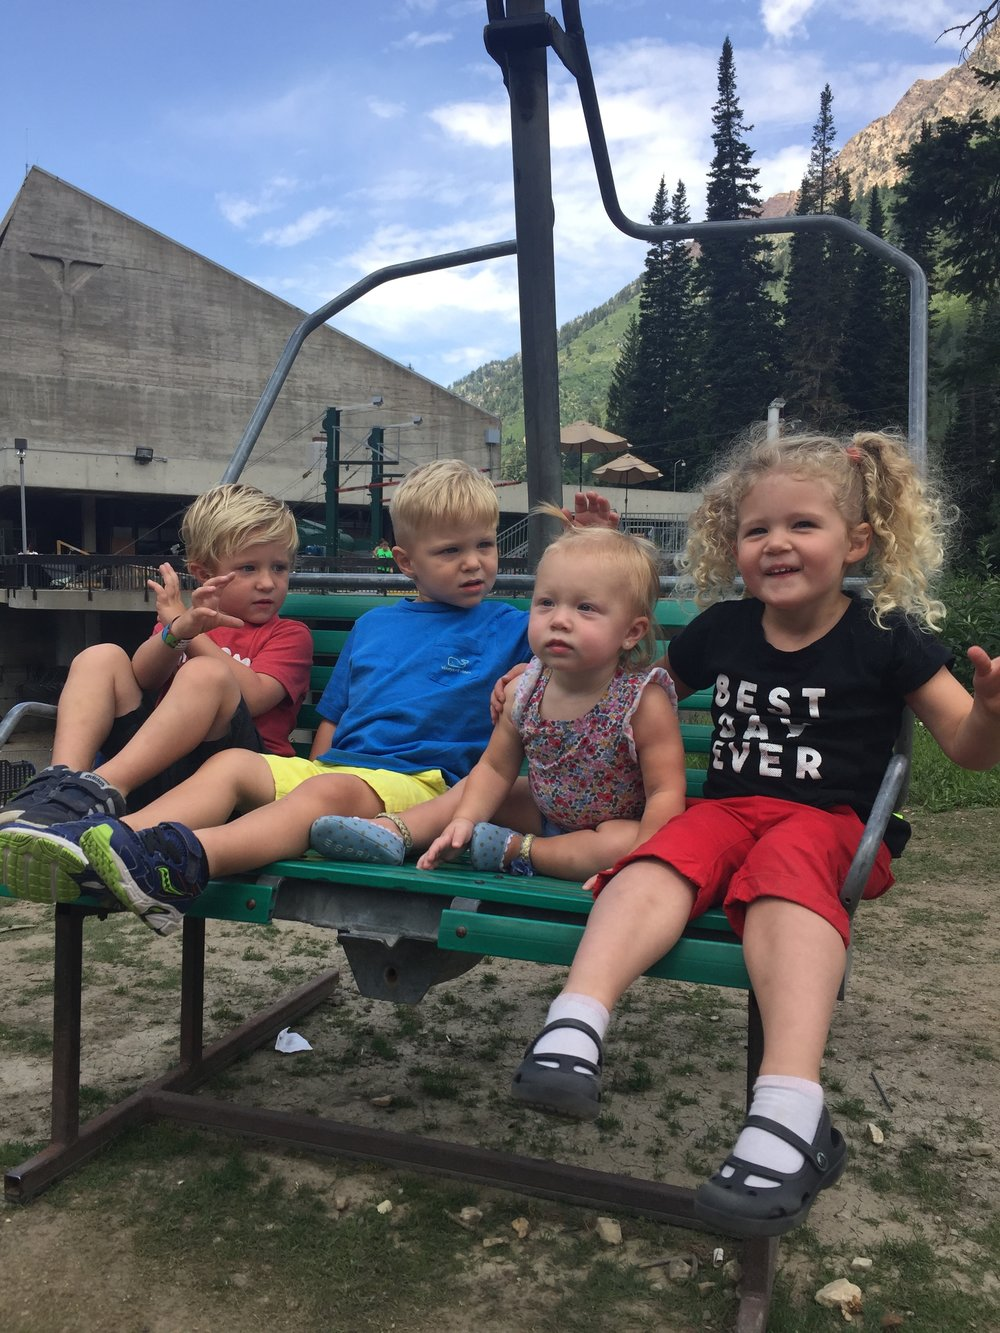 All of them together on a ski lift at Snowbird.